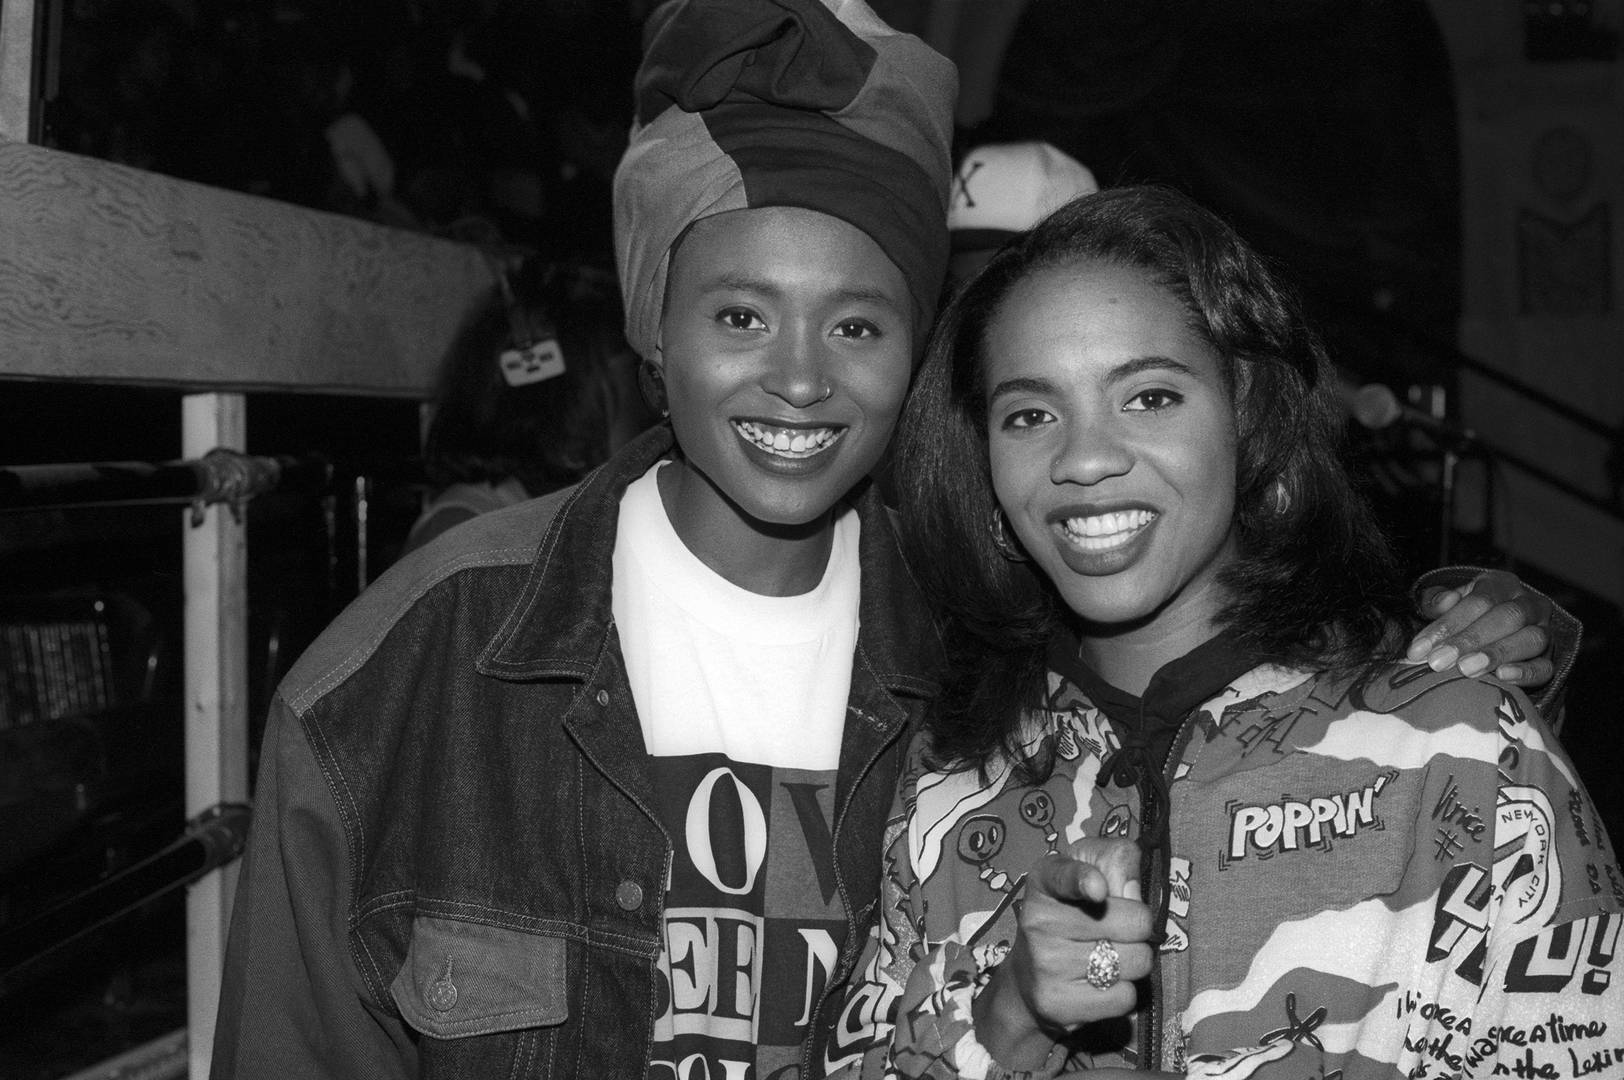 Dee Barnes, MC Lyte, Rapper, Dr. Dre, Assault